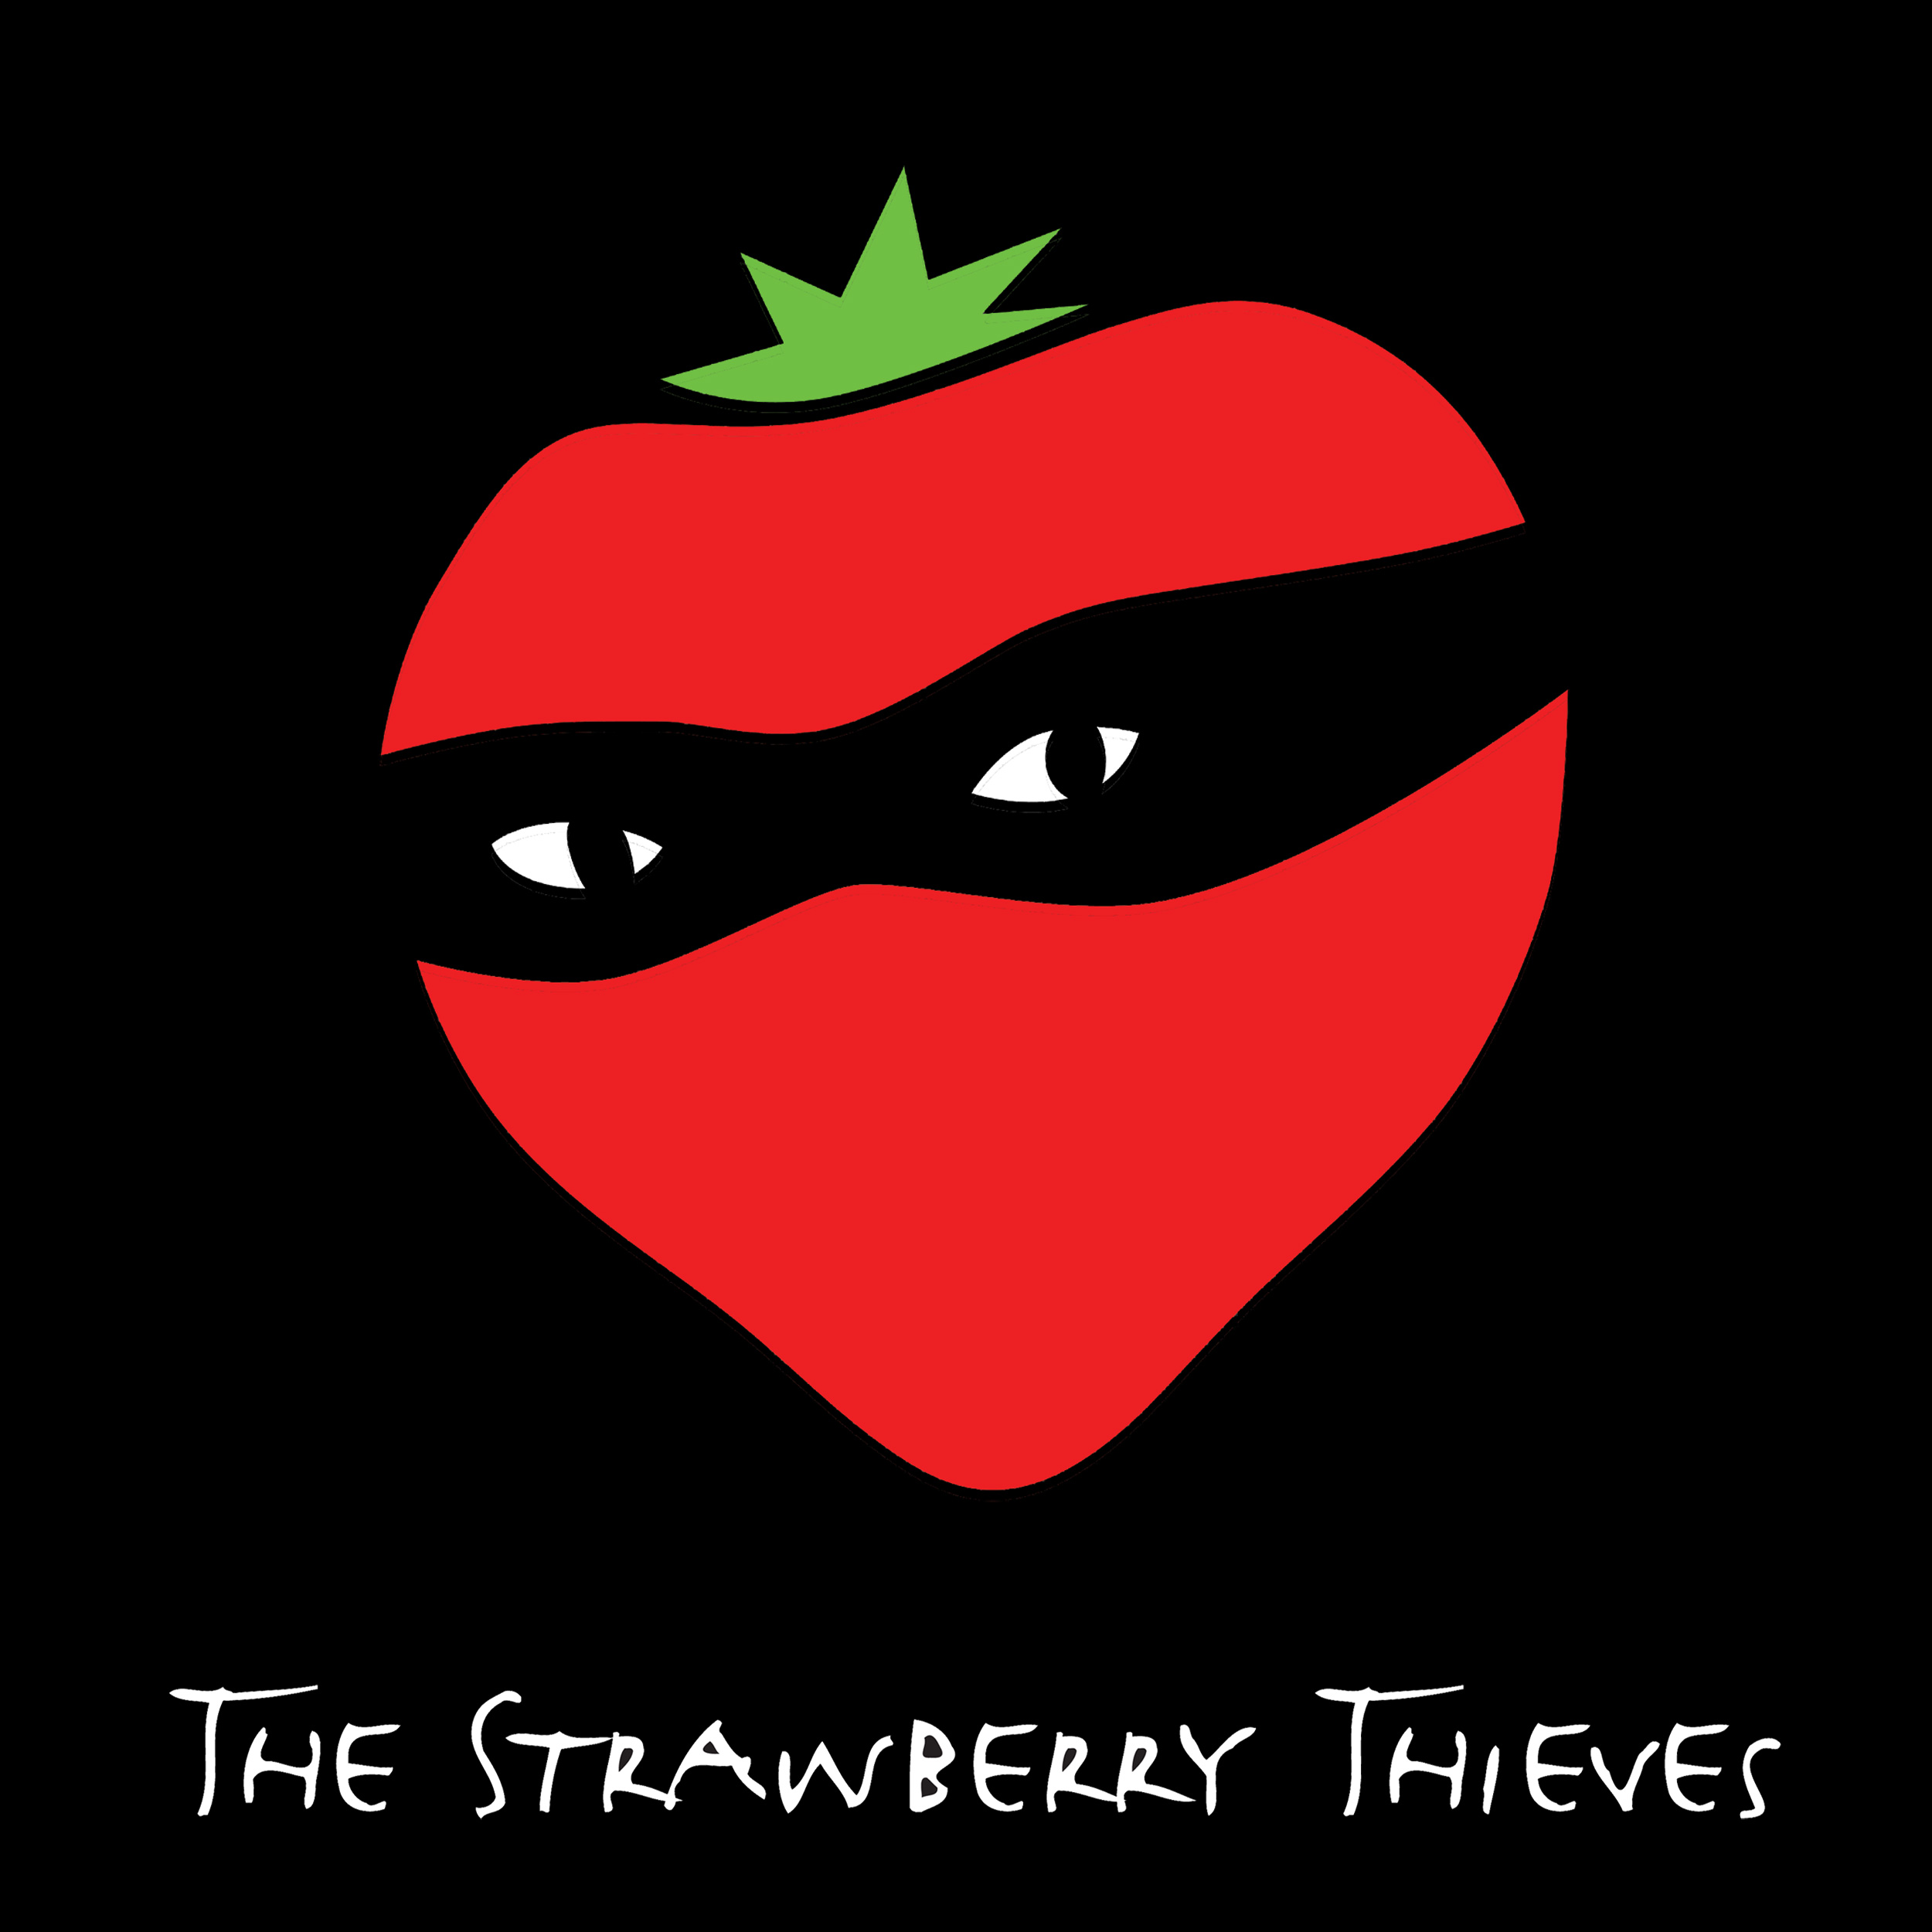 The Strawberry Thieves Hideout